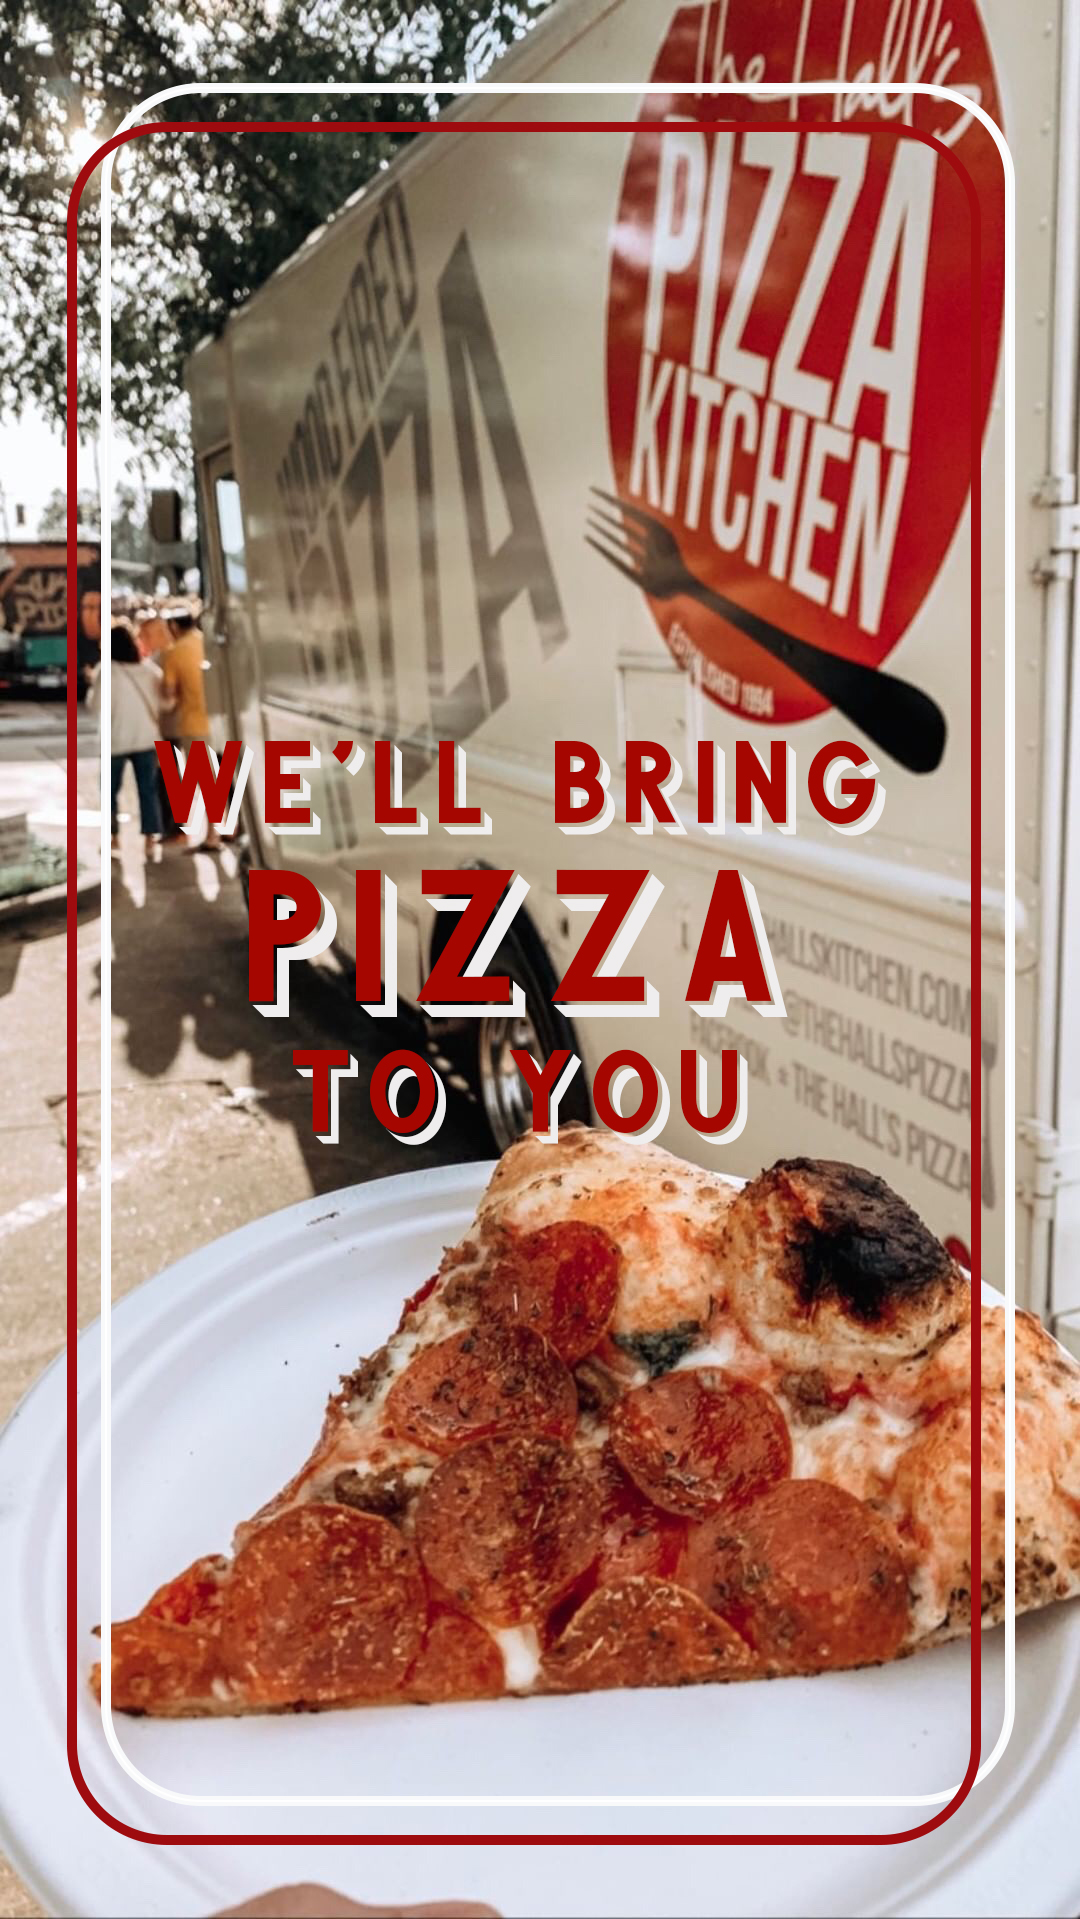 PIZZA TRUCK EMAIL DESIGN.jpg